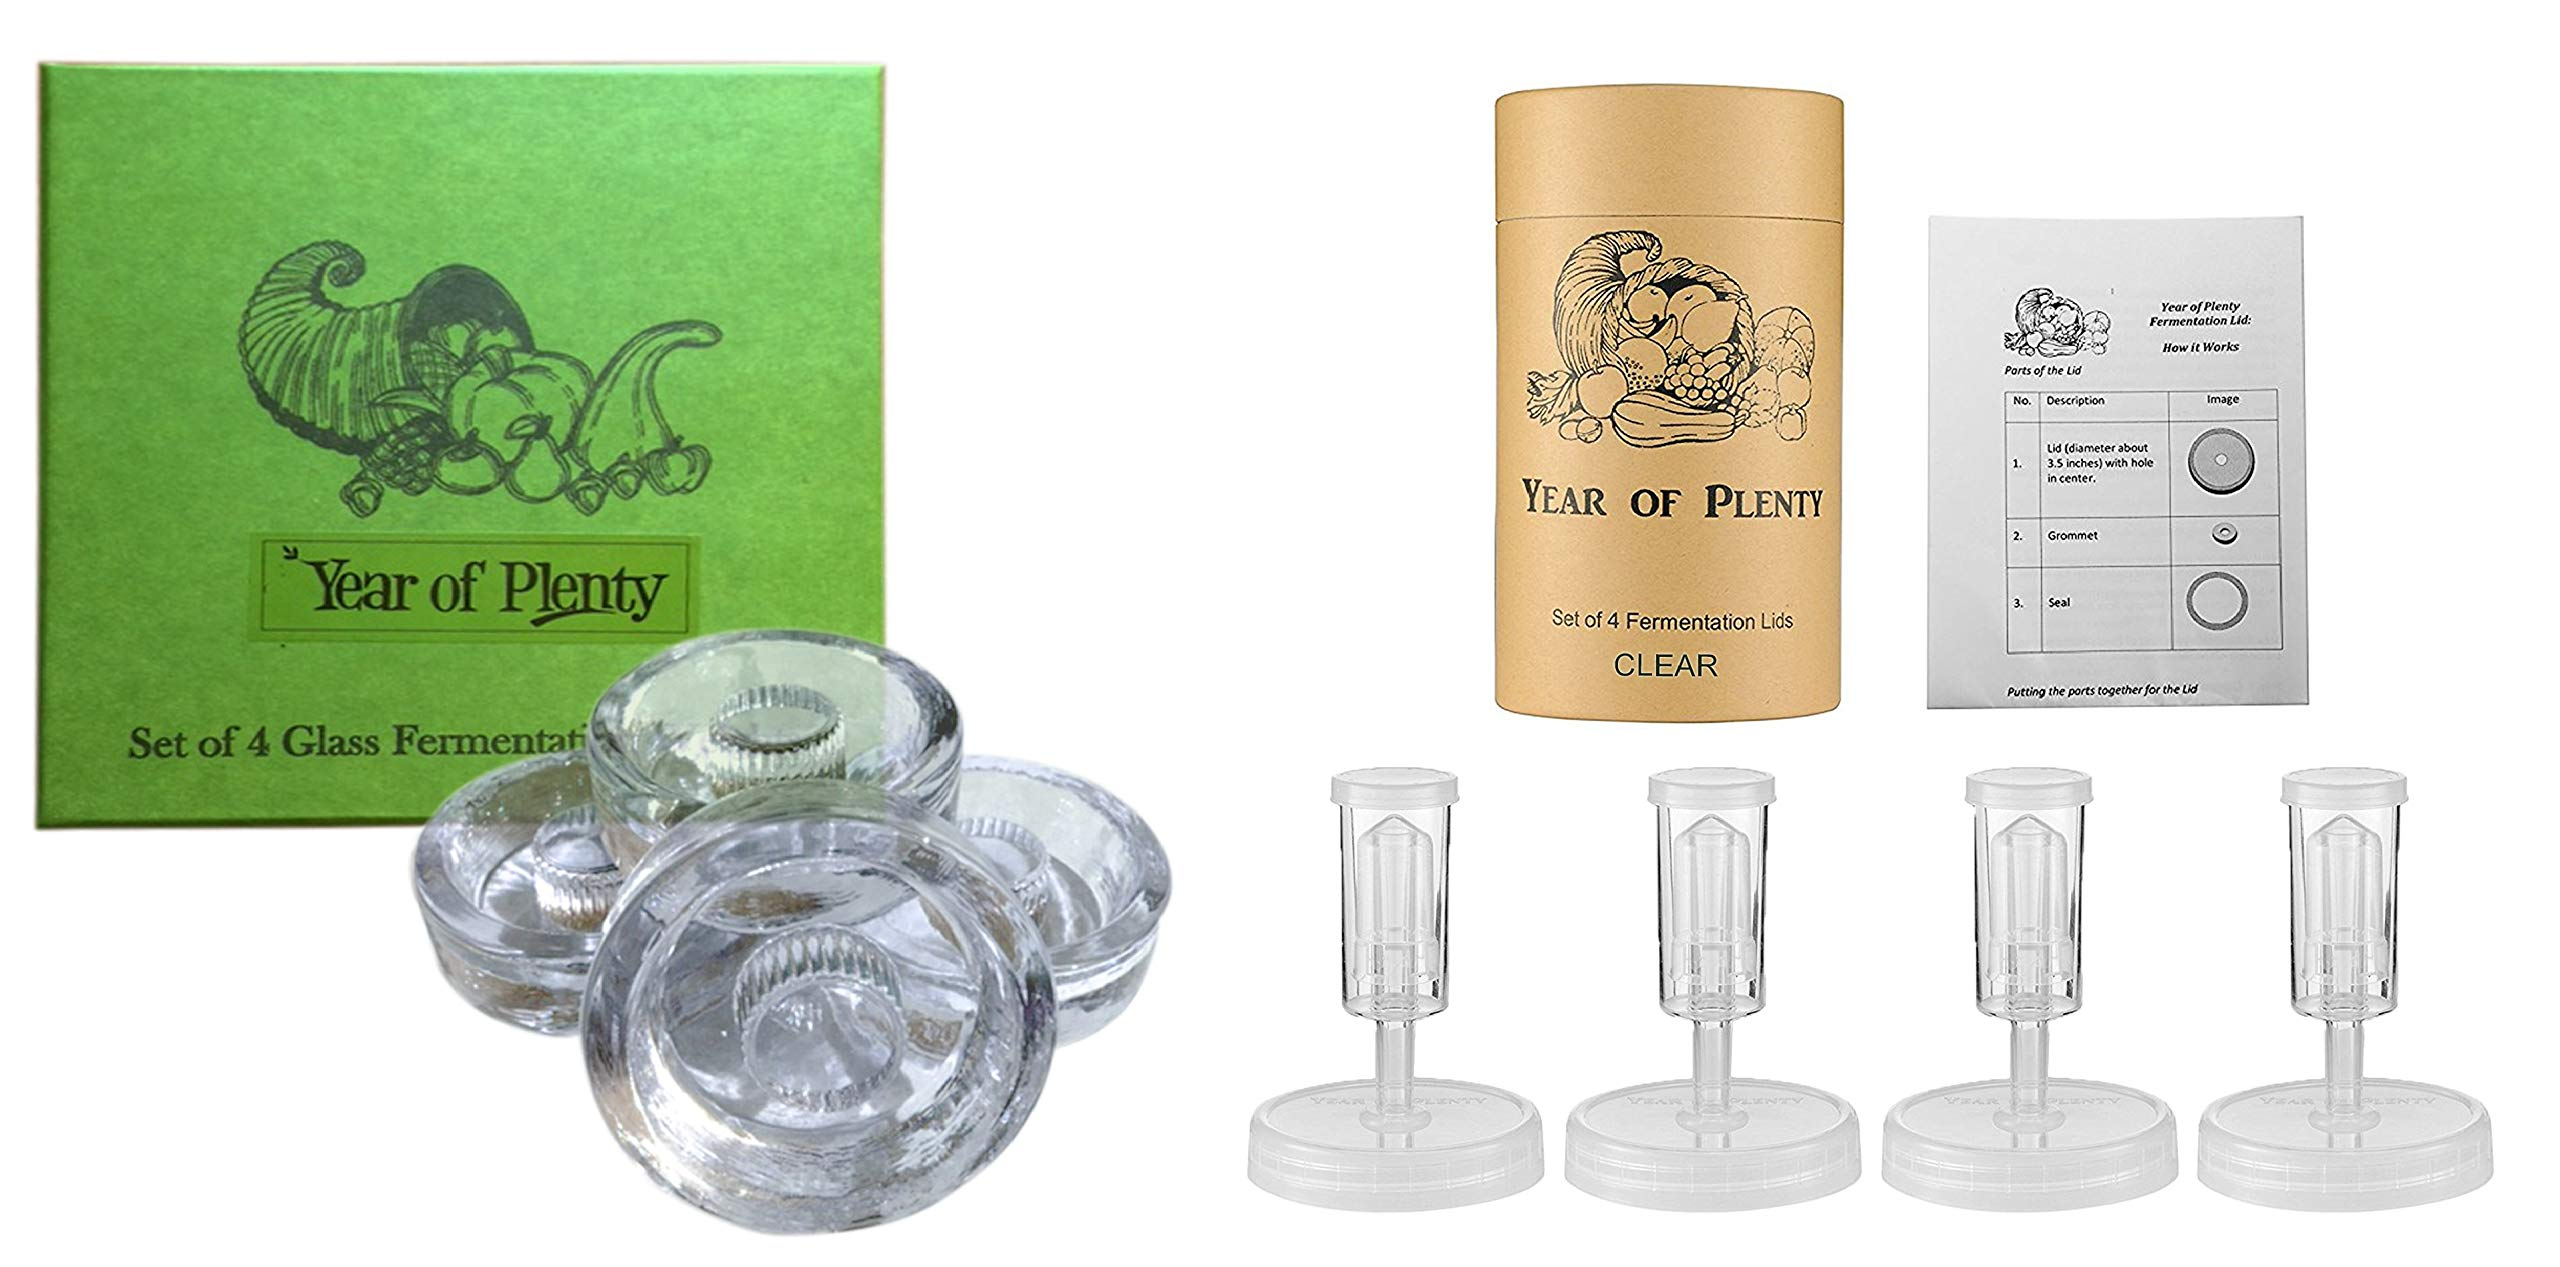 Year of Plenty Fermentation Set | Includes 4 NonSlip Grip Glass Fermentation Weights and 4 Clear Fermenting Lids | For Wide Mouth Mason Jar Ferments such as Sauerkraut, Kimchi and Pickles by Year of Plenty